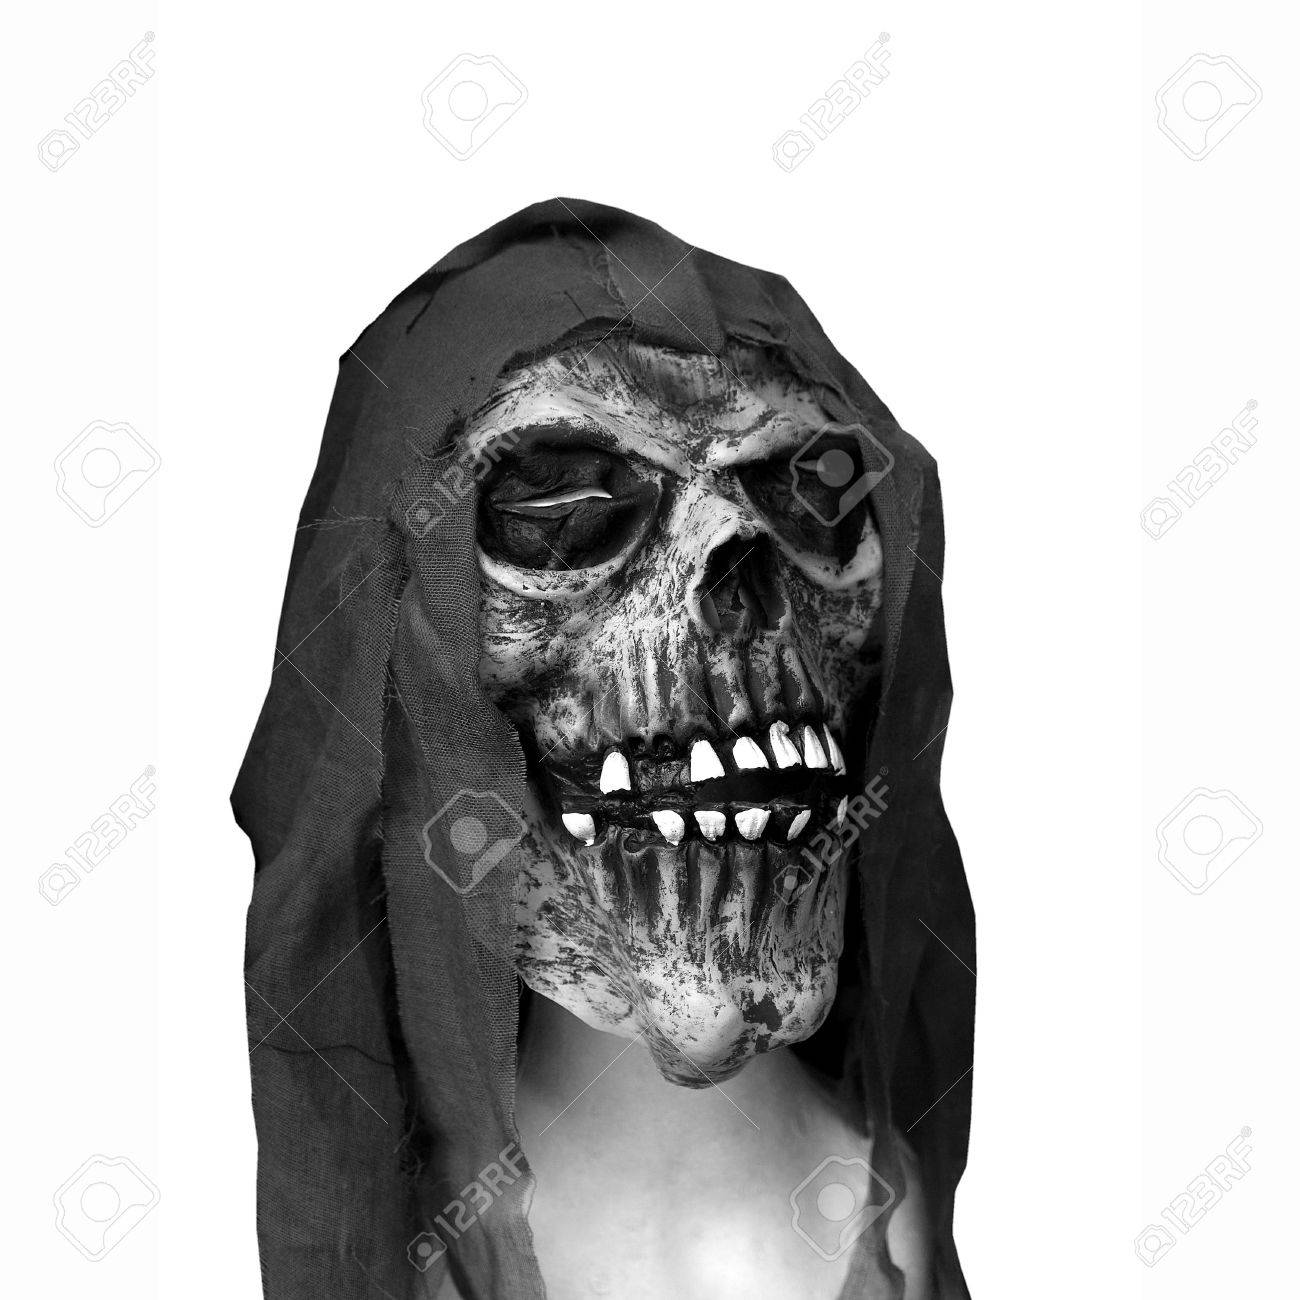 Halloween Skull Representing Mask Of The Death Stock Photo ...